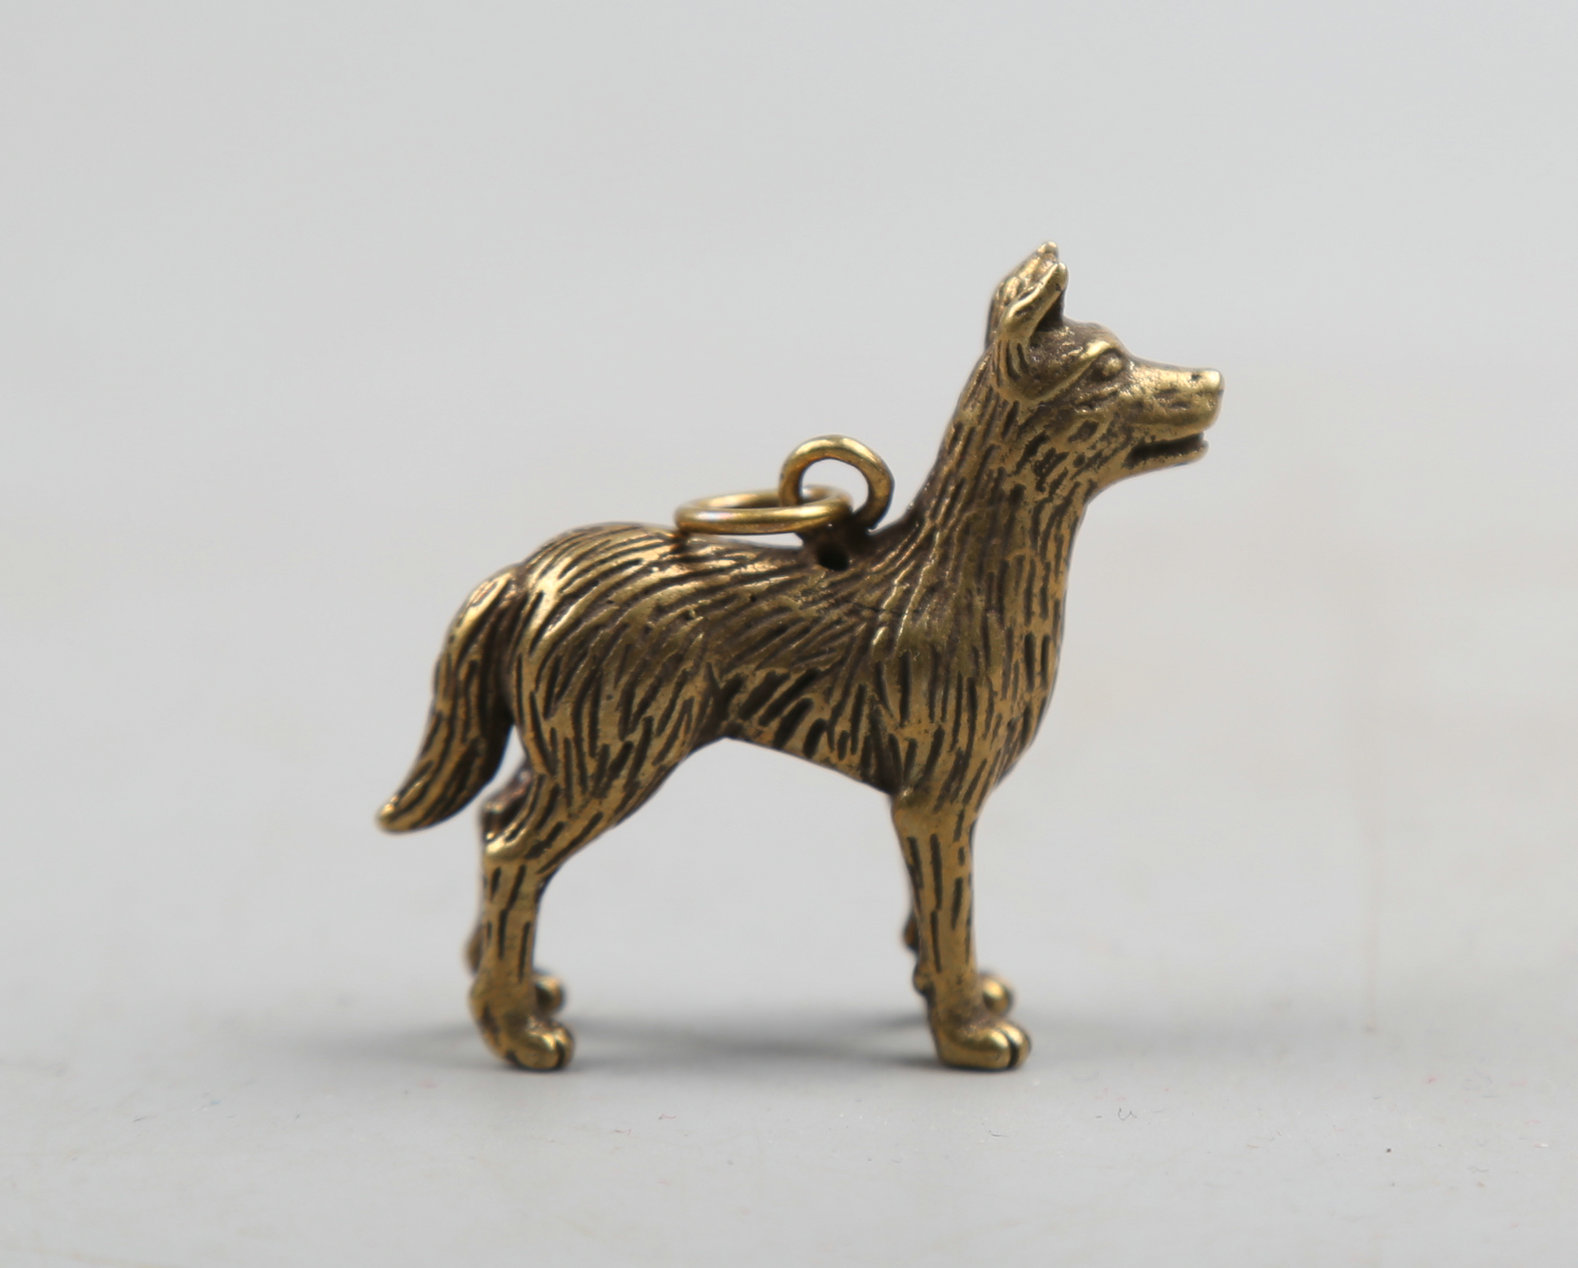 43MM/1.7 Collect Curio Rare Chinese Fengshui Bronze Exquisite Animal 12 Zodiac Year Dog Puppy Whiffet Doggie Pendant Statue 11g